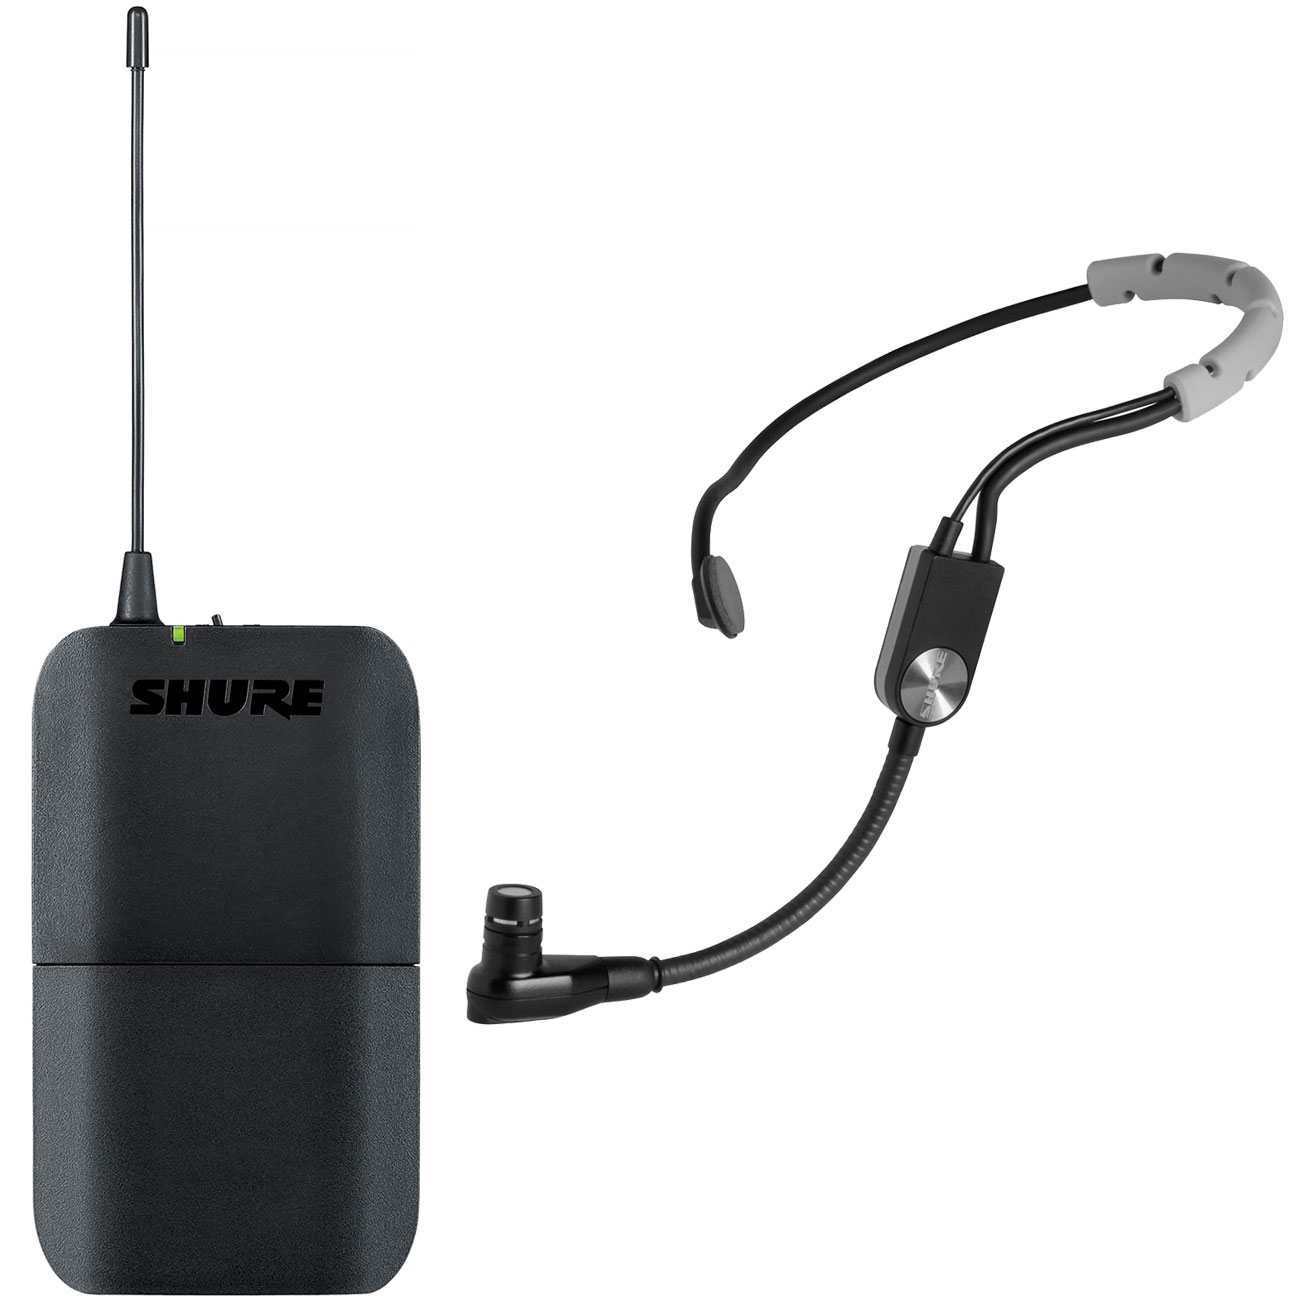 Shure BLX Bodypack Transmitter with SM35 Headset Microphone